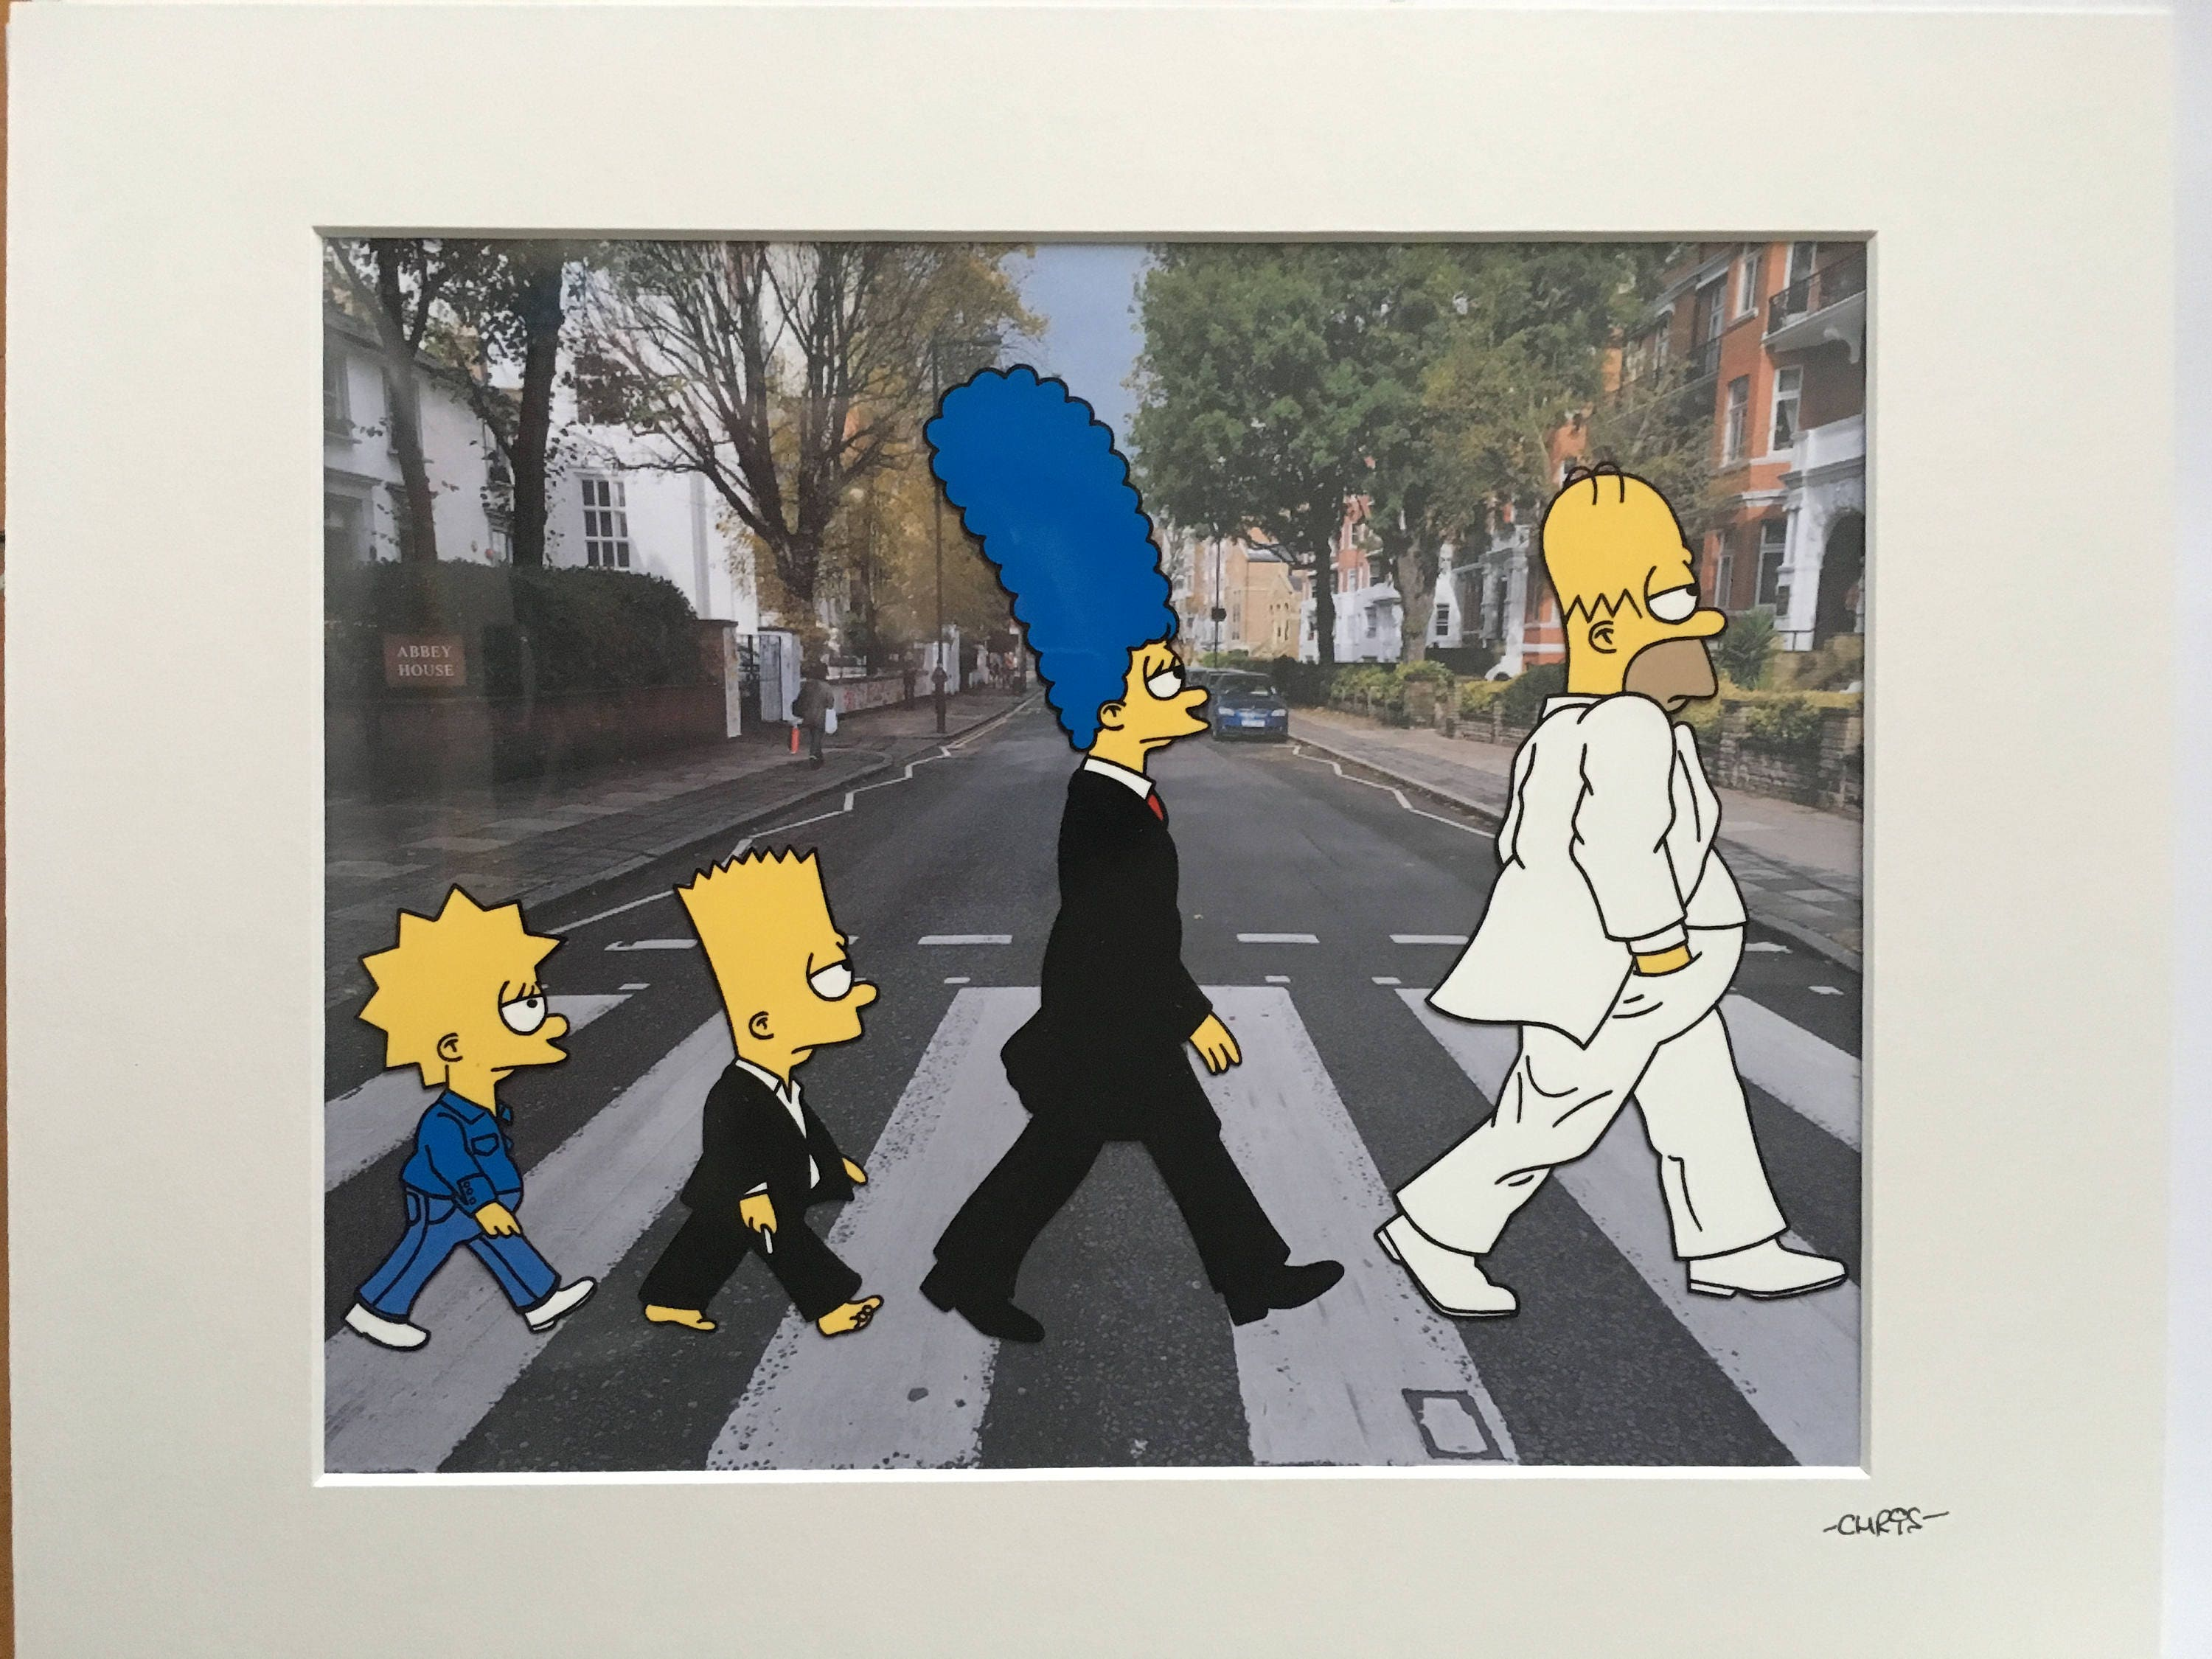 The simpsons abbey road crossing hand drawn hand etsy - The simpsons abbey road wallpaper ...